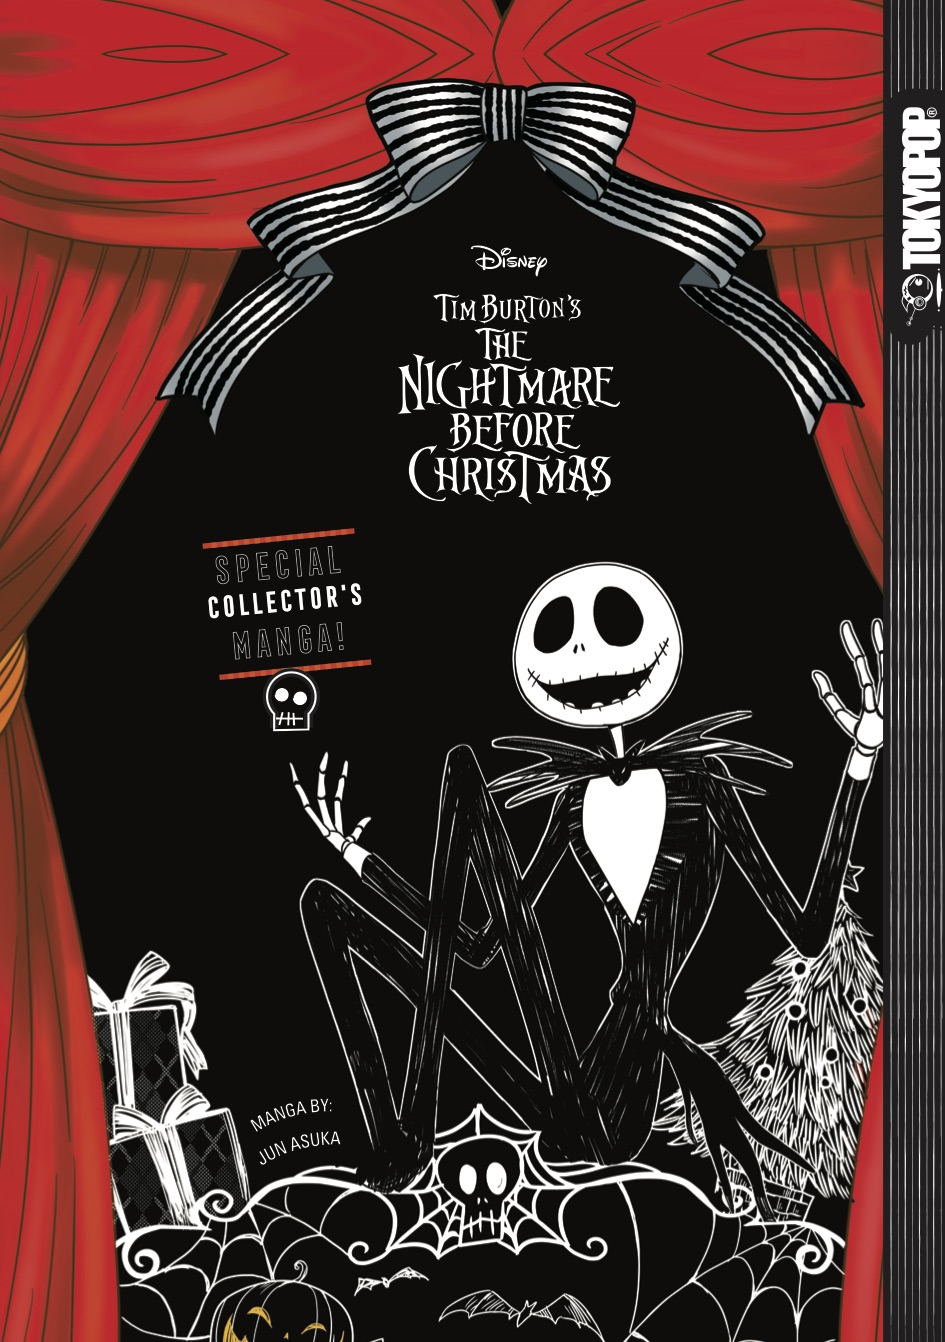 The Nightmare Before Christmas Sequel is A Comic Book